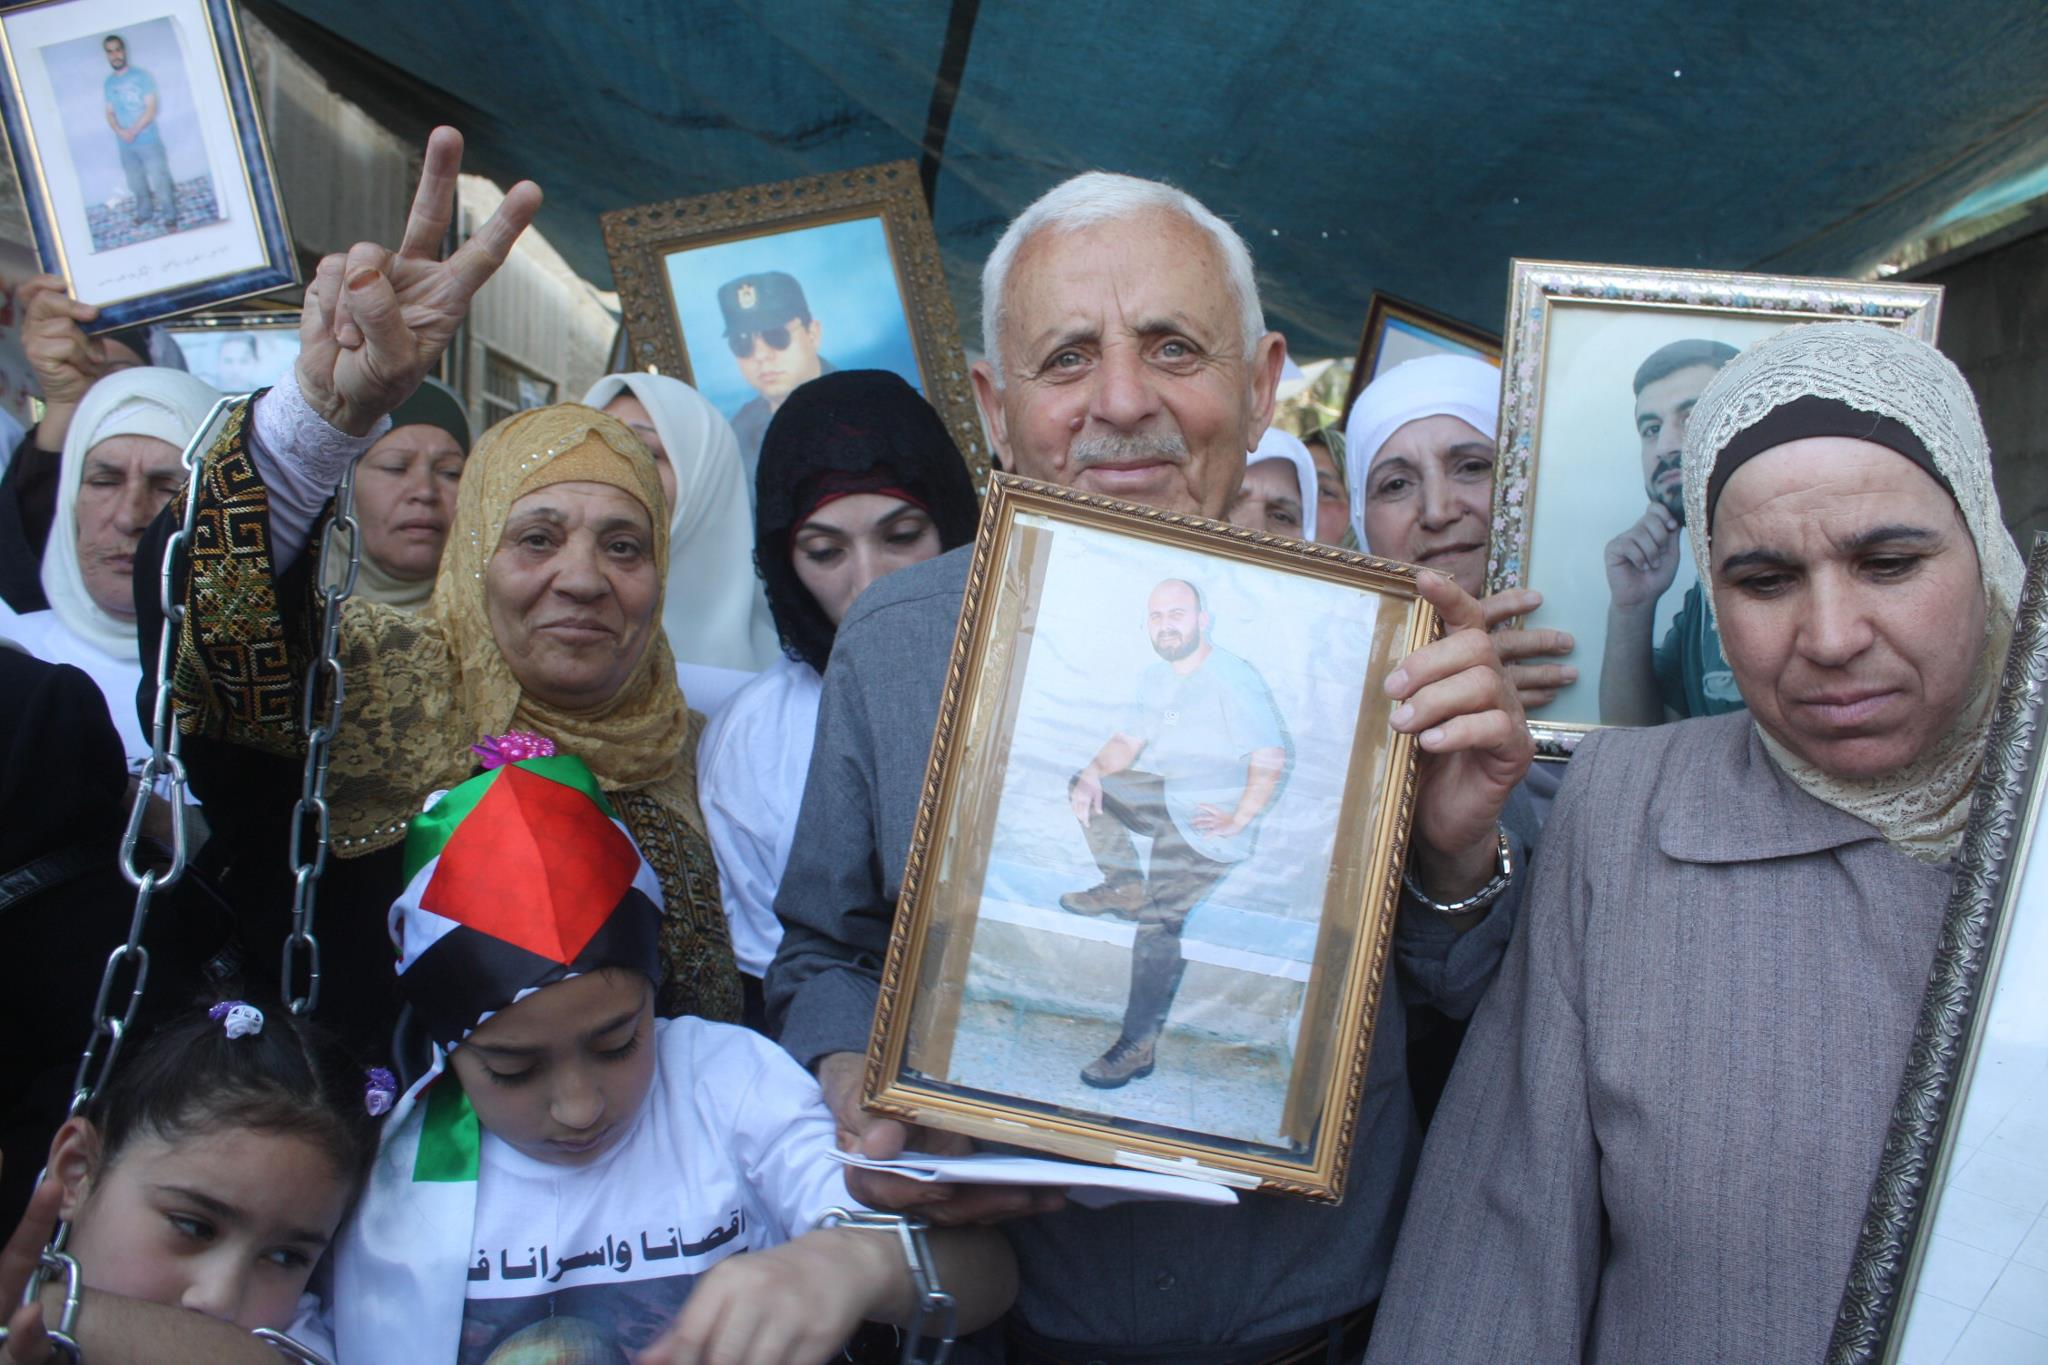 Jihad's father, holding Jihad's picture, celebrates his son's upcoming release from Israeli prison. (Amjad Abu Asab)